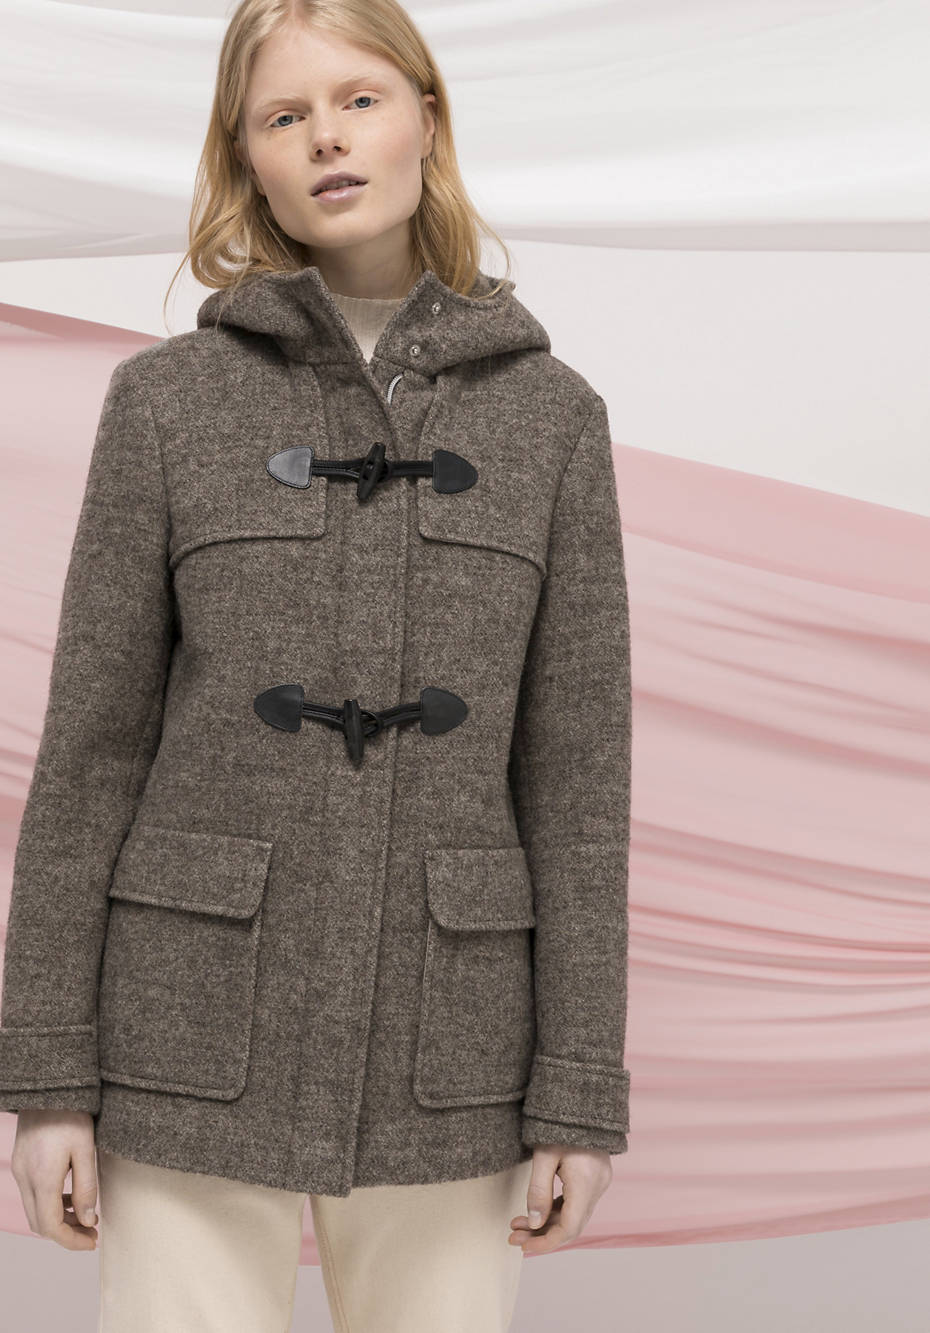 Rhön jacket Limited by Nature made of pure new wool